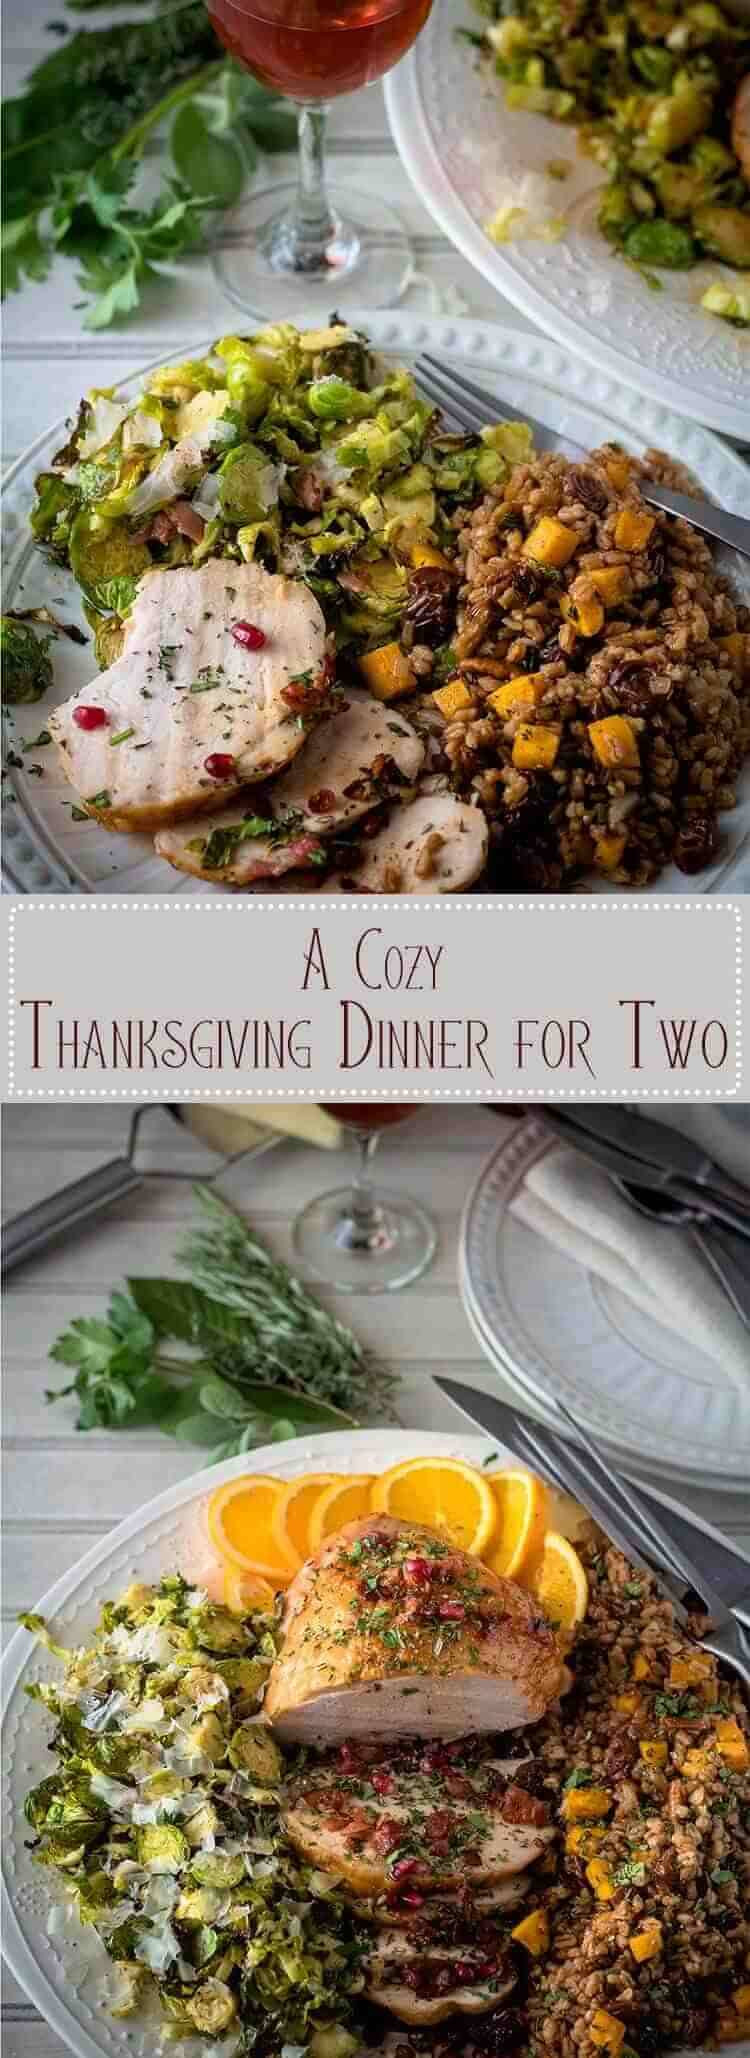 Thanksgiving Dinner For Two  A Cozy Thanksgiving Dinner For Two Beyond Mere Sustenance